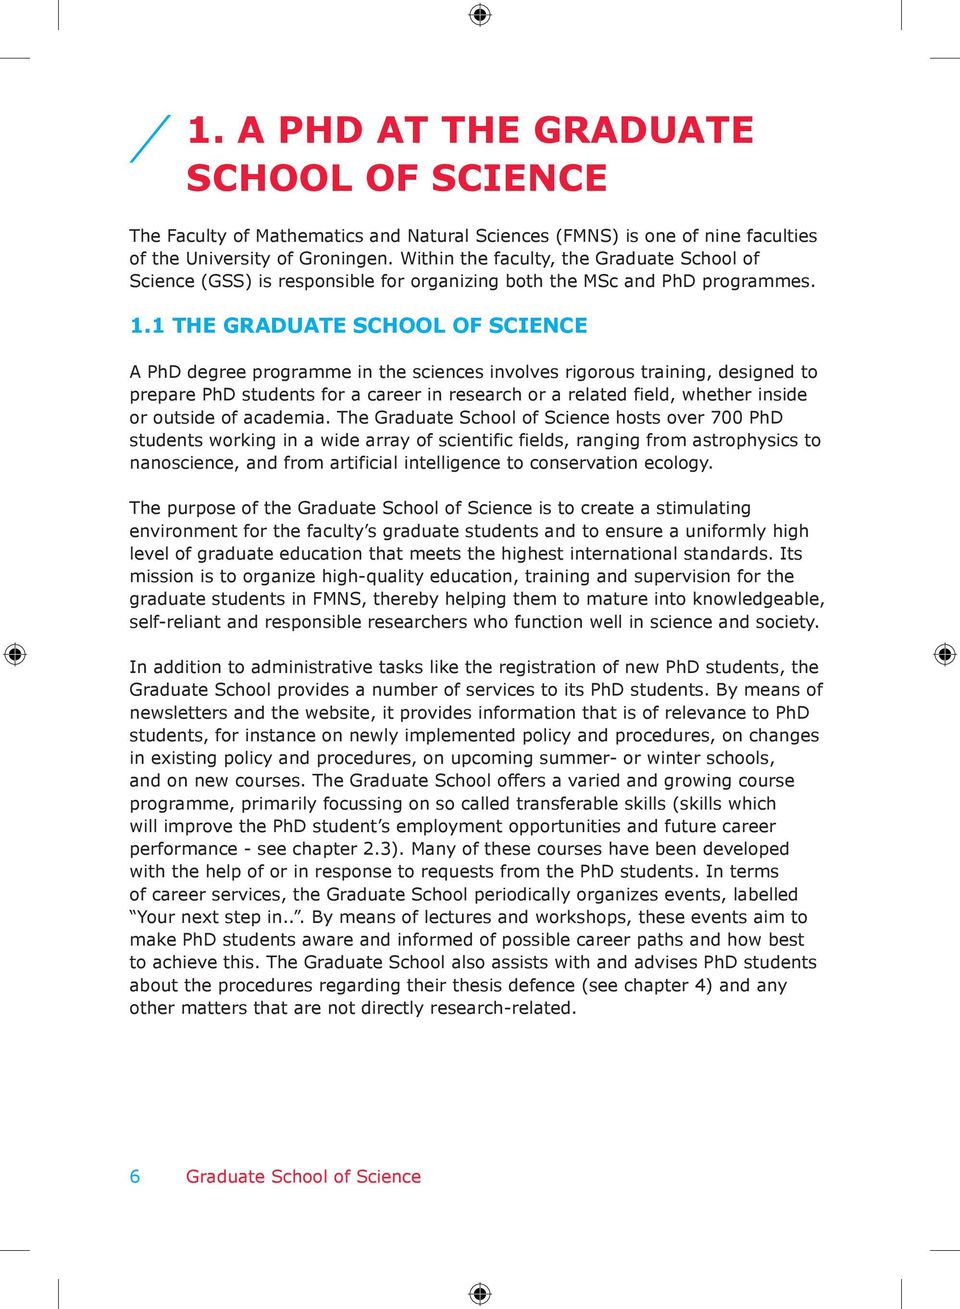 PhD Guide Graduate School of Science - PDF